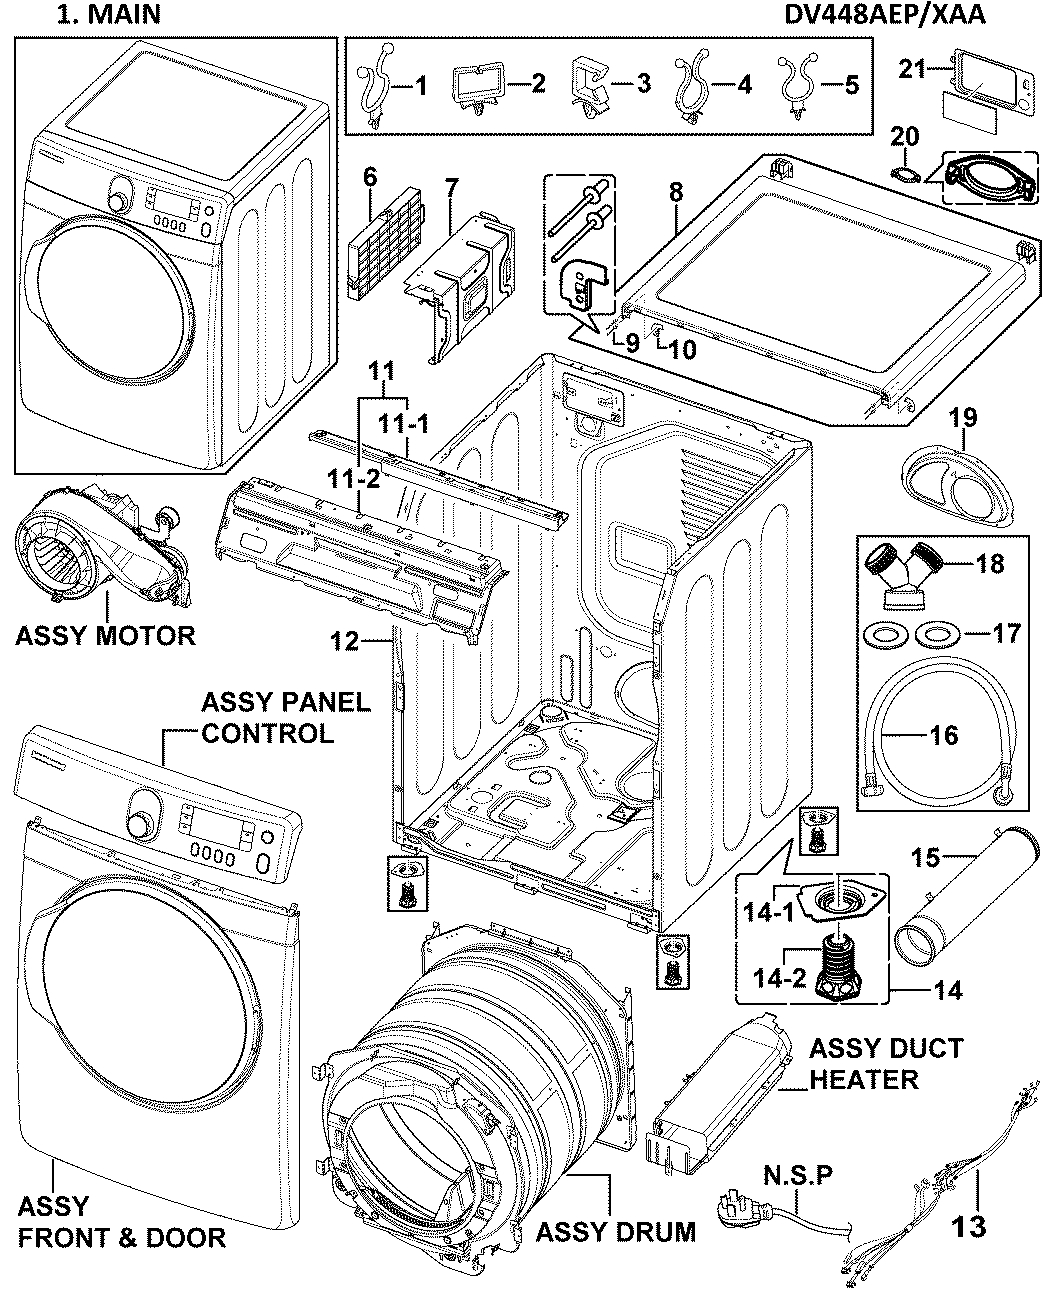 hight resolution of wiring diagram for samsung dryer heating element 15s